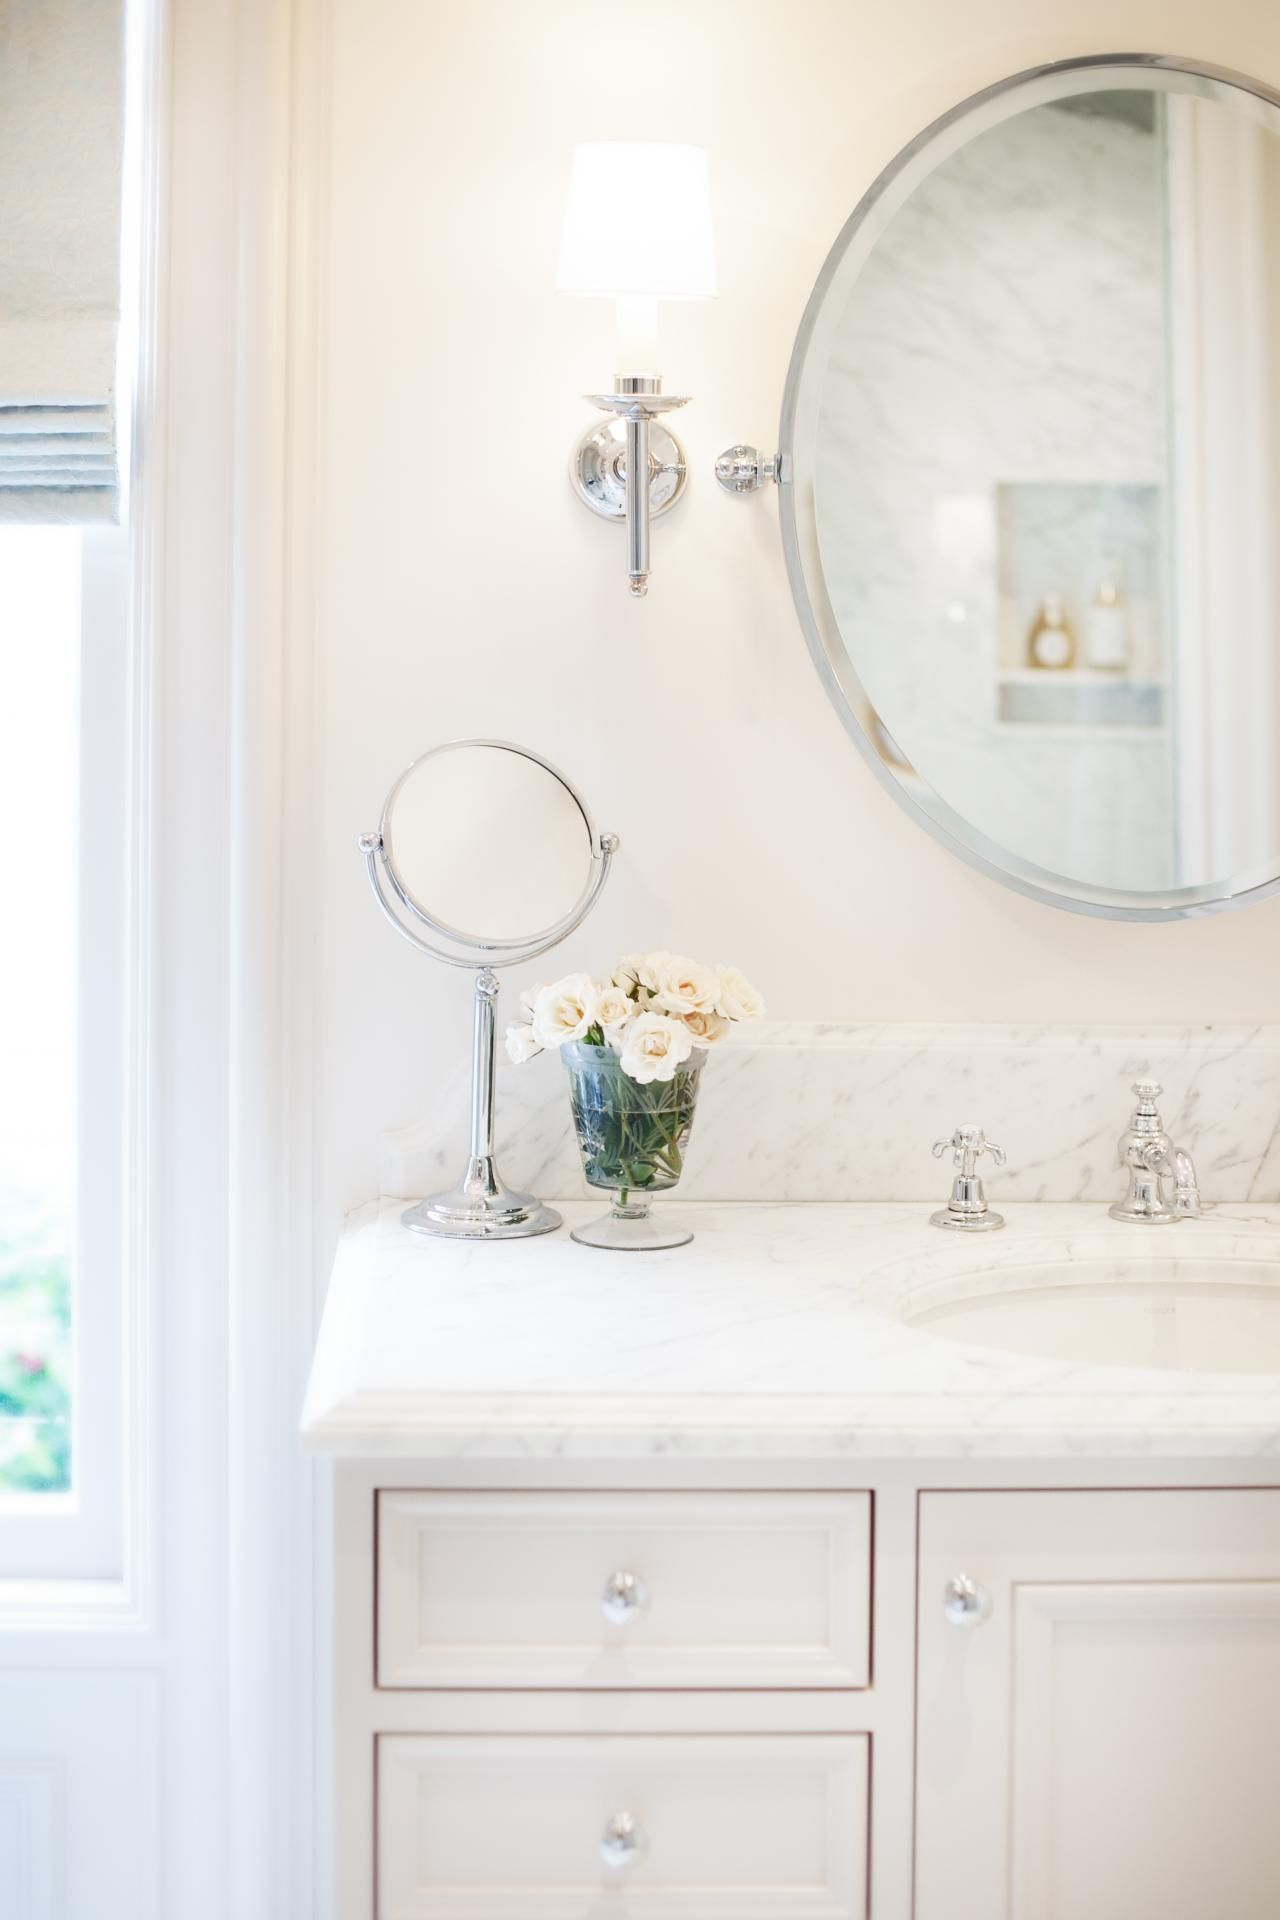 An elegant traditional vanity s a luxurious finish with a white marble countertop A large oval mirror and stainless sconce plete the space